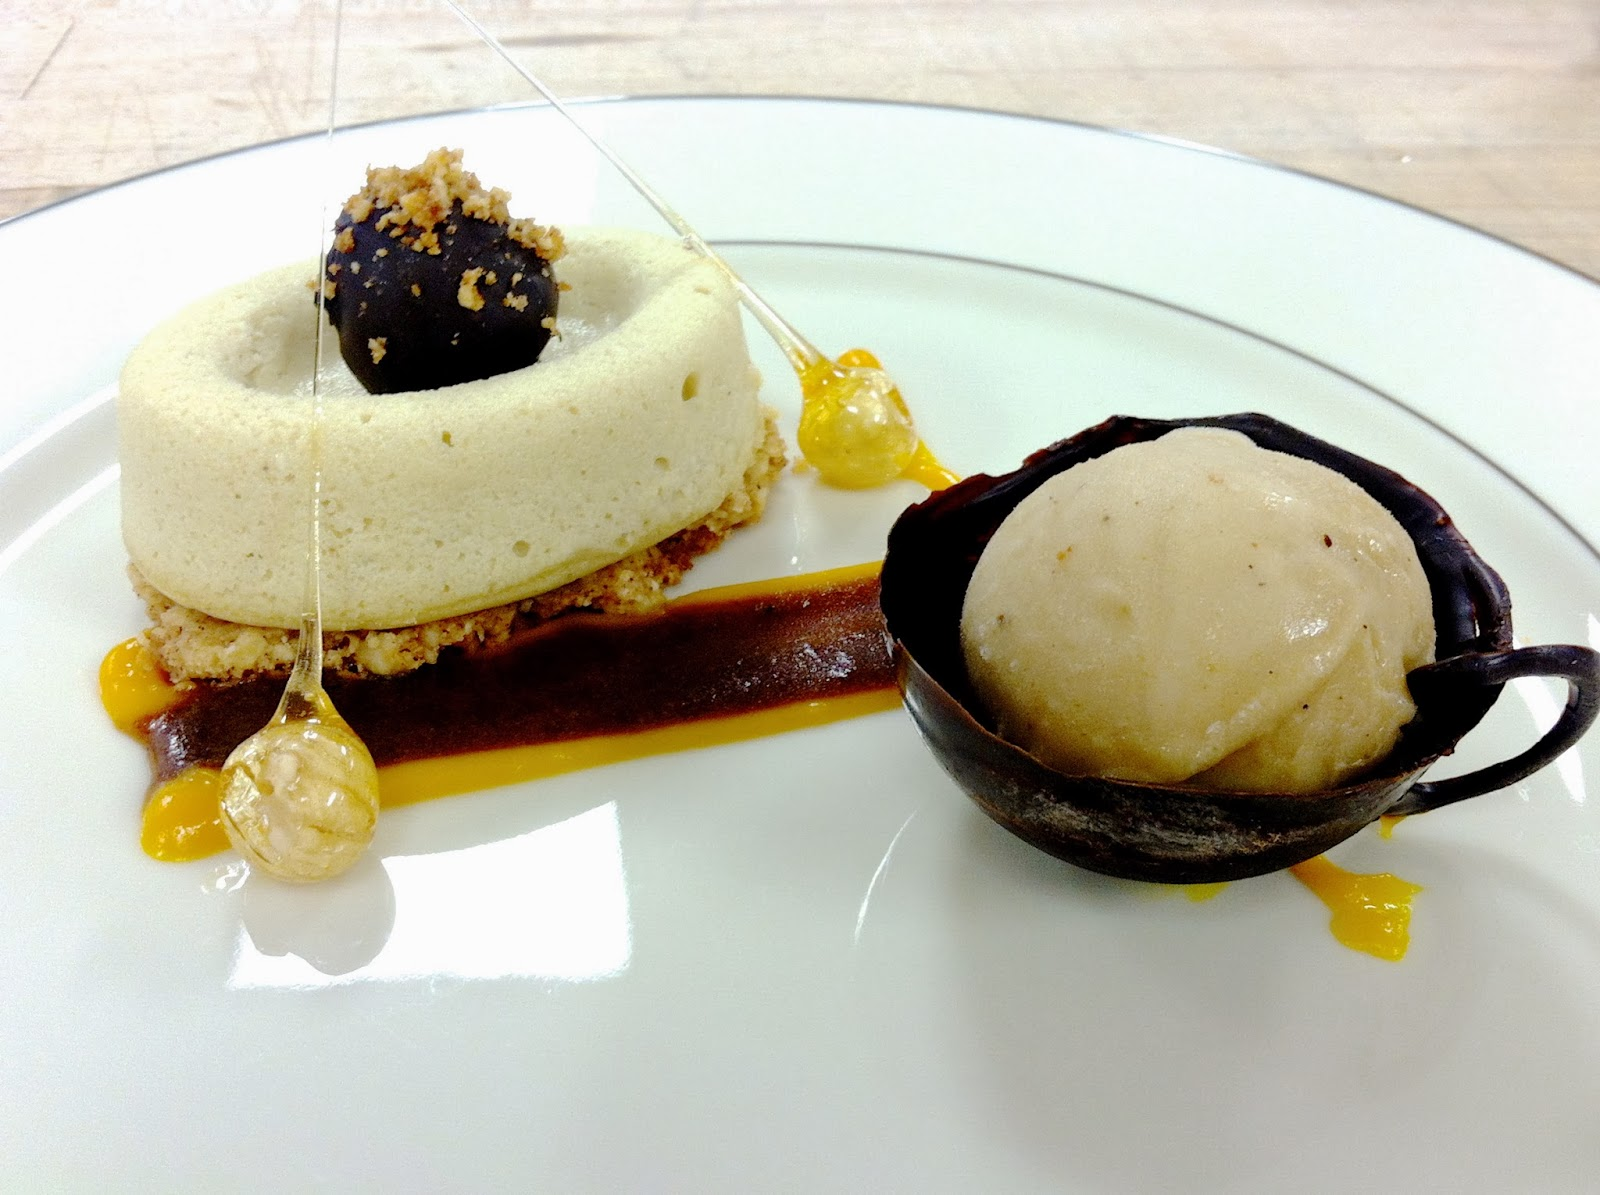 Mocha cheesecake, hazelnut crust, banana's foster sorbet in a ...